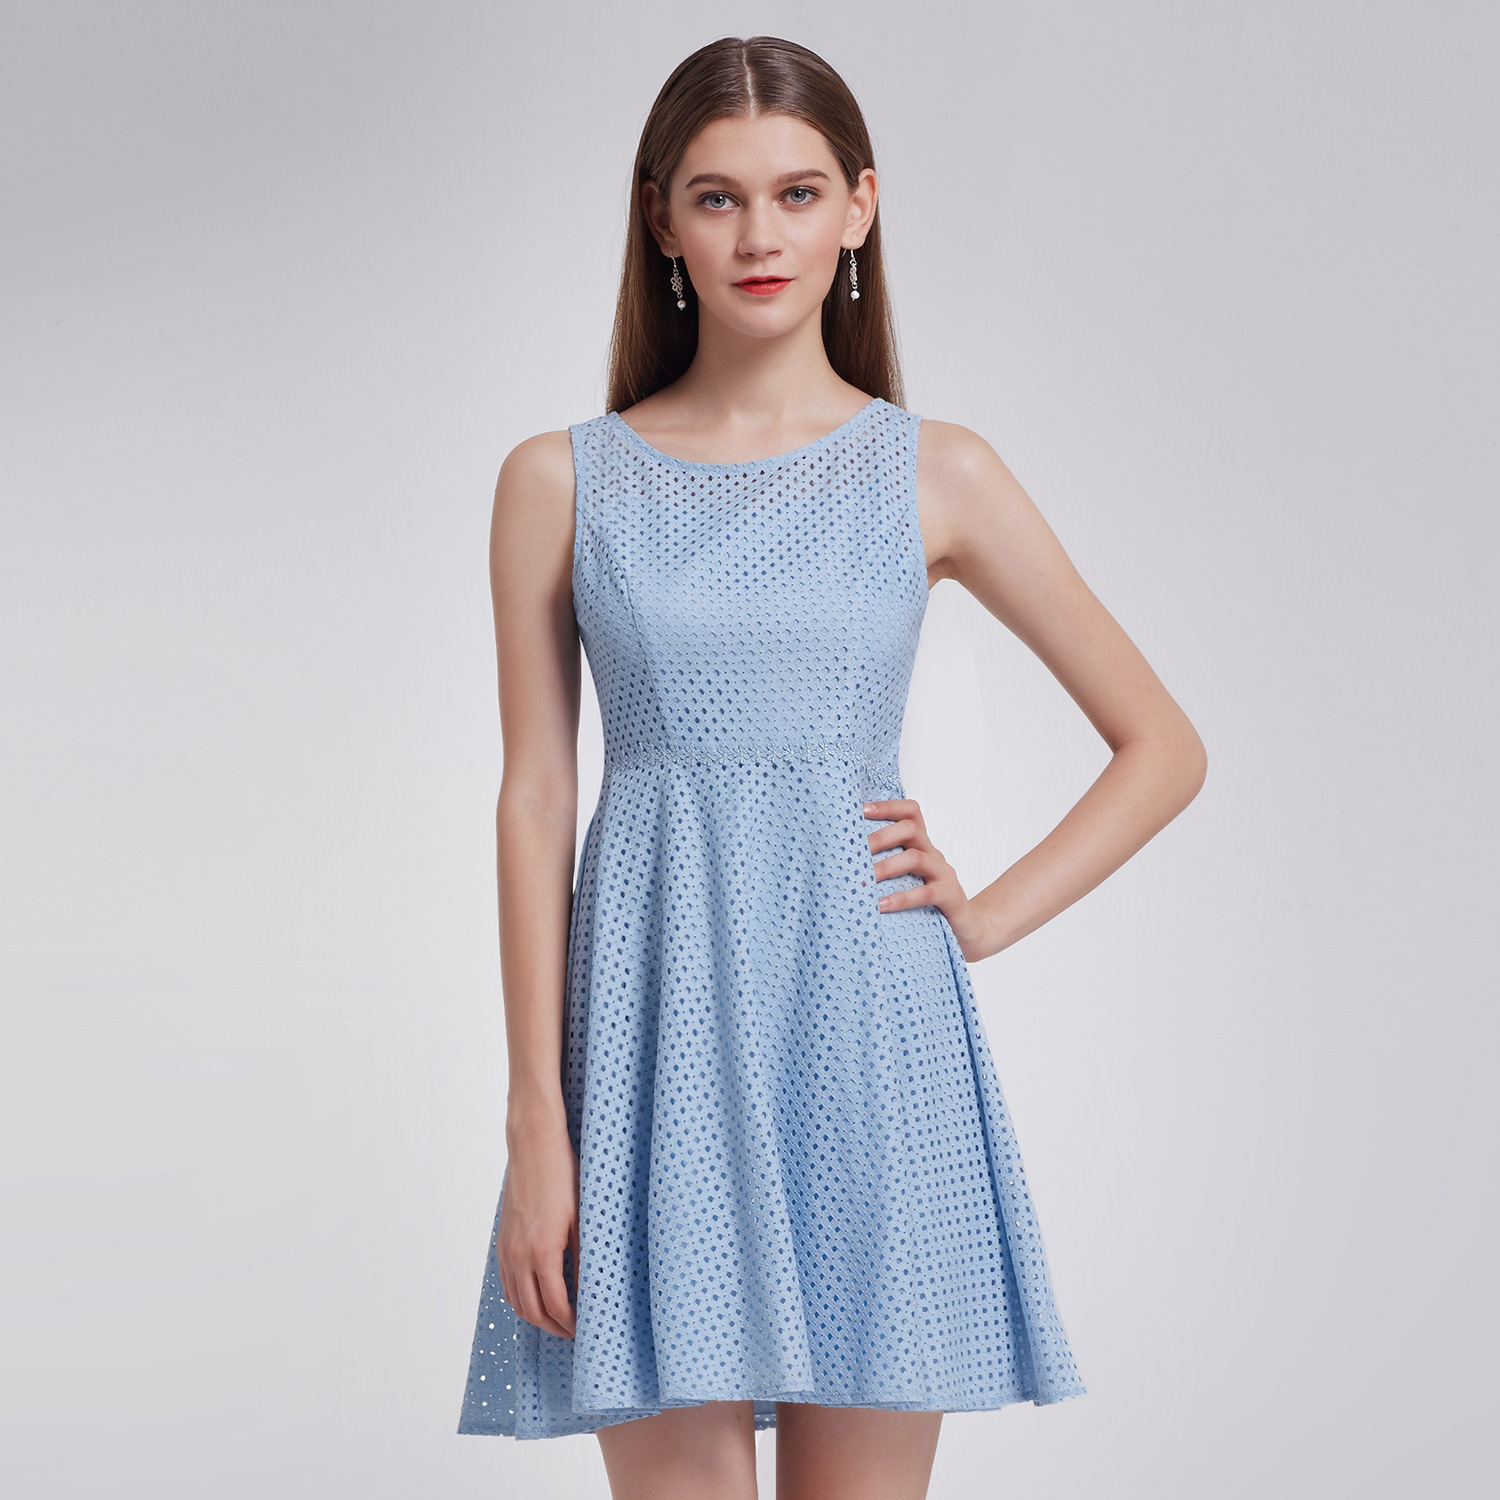 Colorful Casual Party Dresses Component - All Wedding Dresses ...